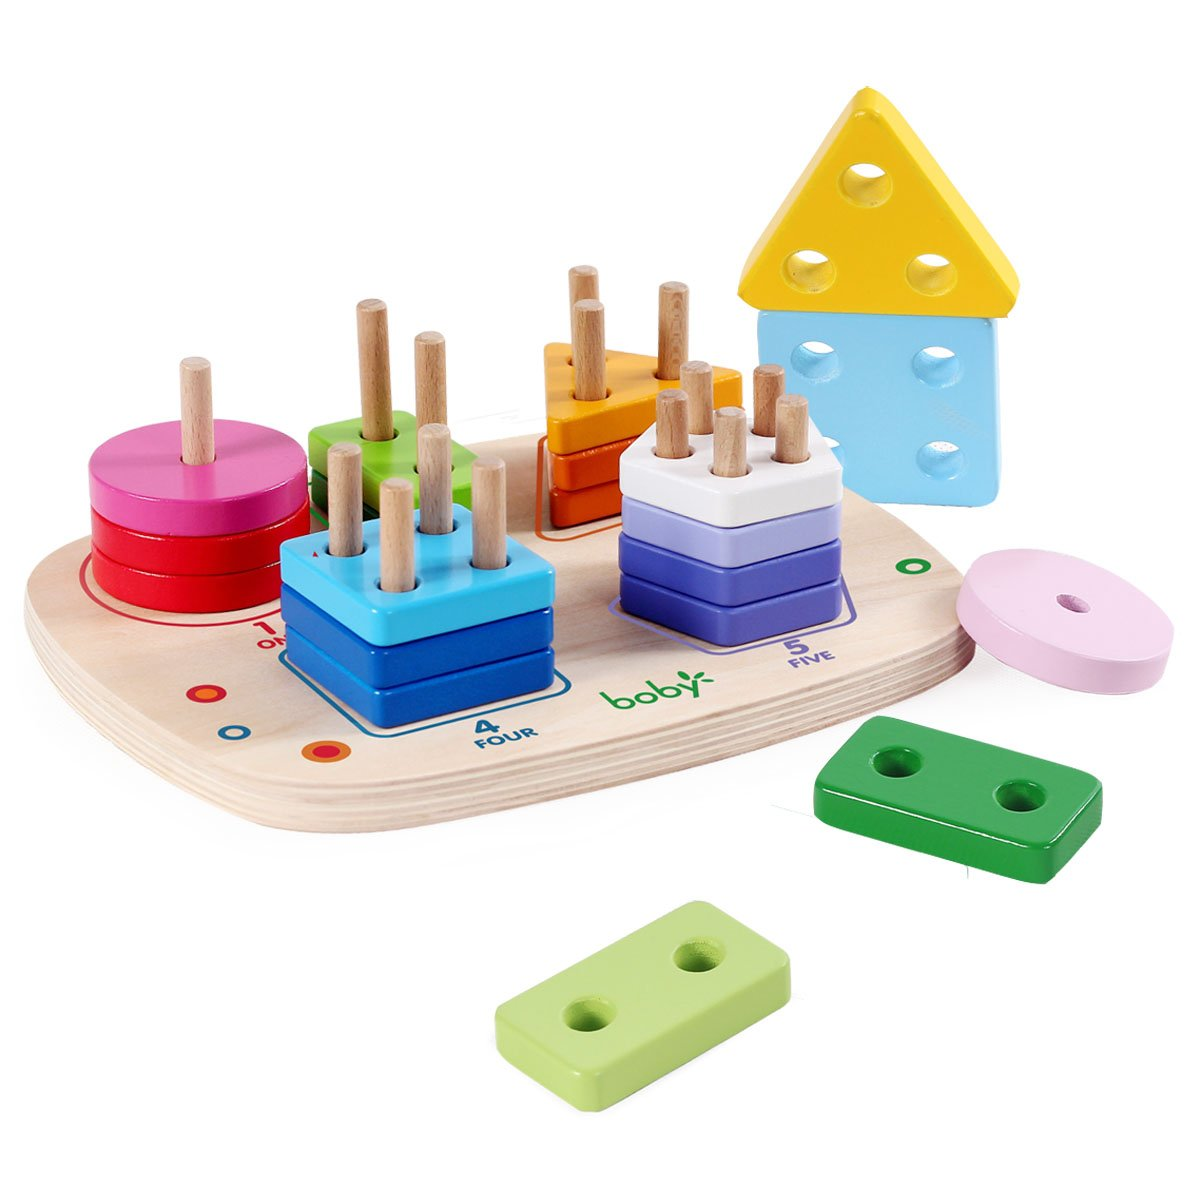 Wooden Educational Preschool Learning Shape Color Recognition Geometric Board Block Stacking Sorting Puzzle Toys, Birthday Gift Toy for Age 3 4 5 Years Old and up Kid Children Baby Toddler Boy Girl rolimate ZY-003